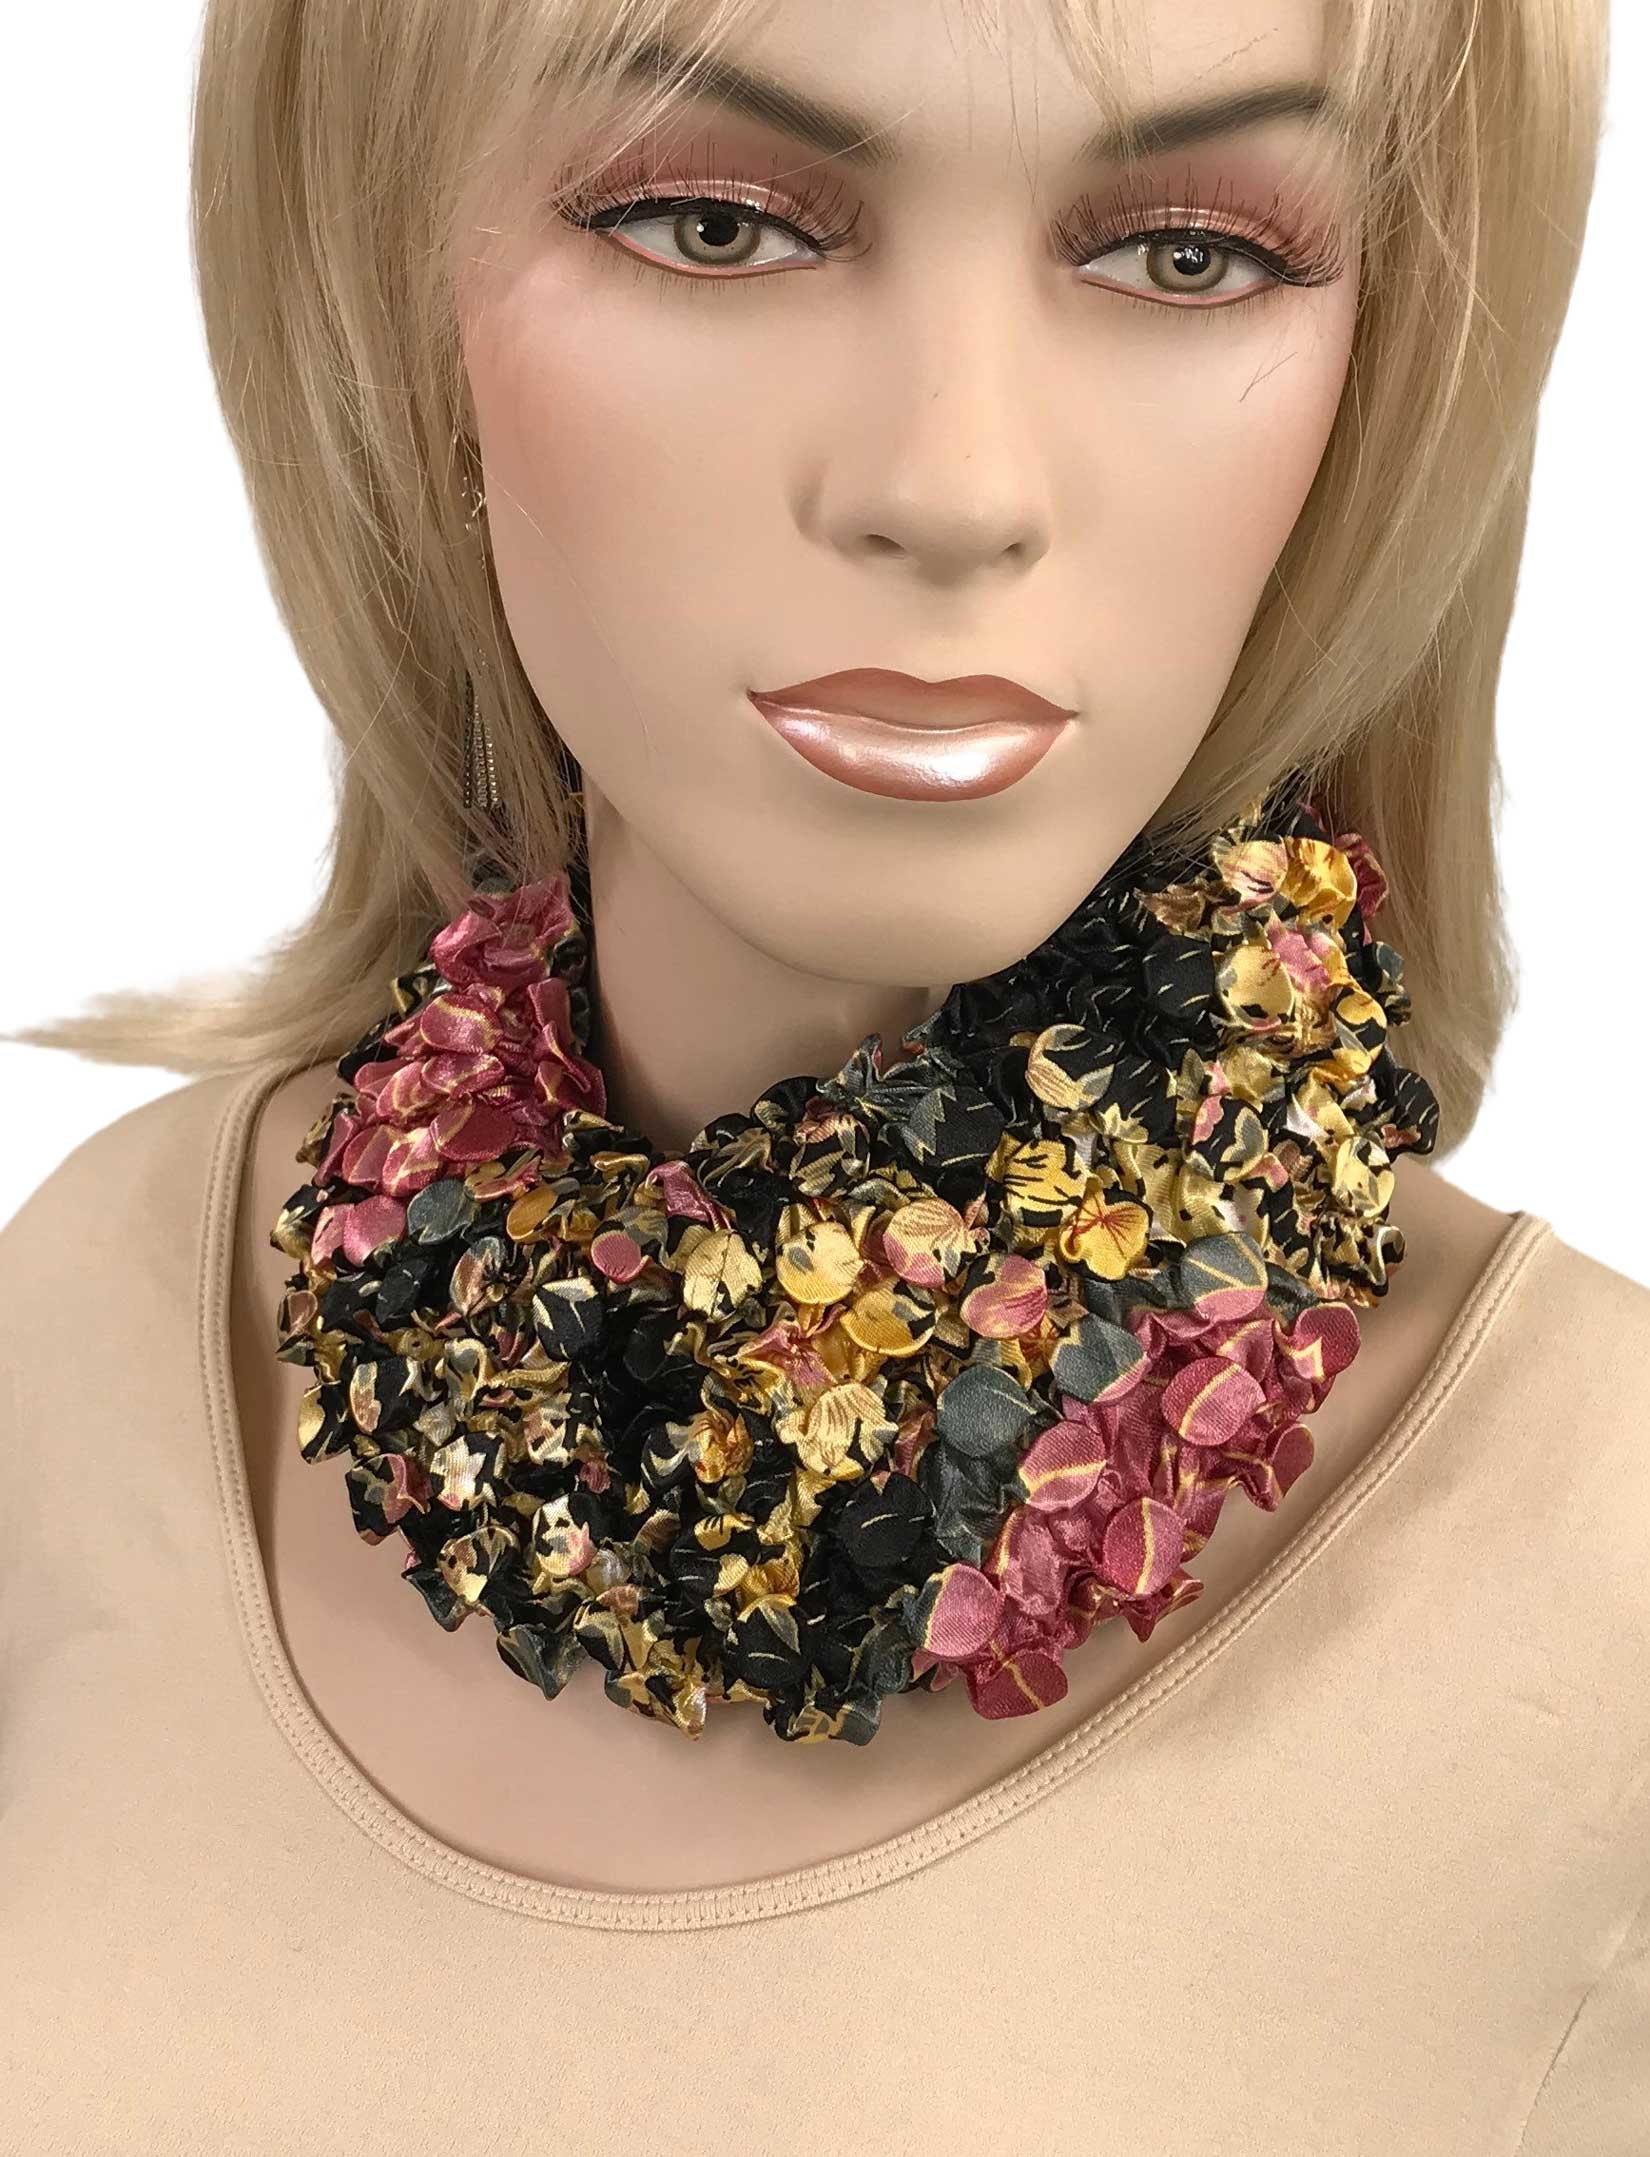 As a Scarf